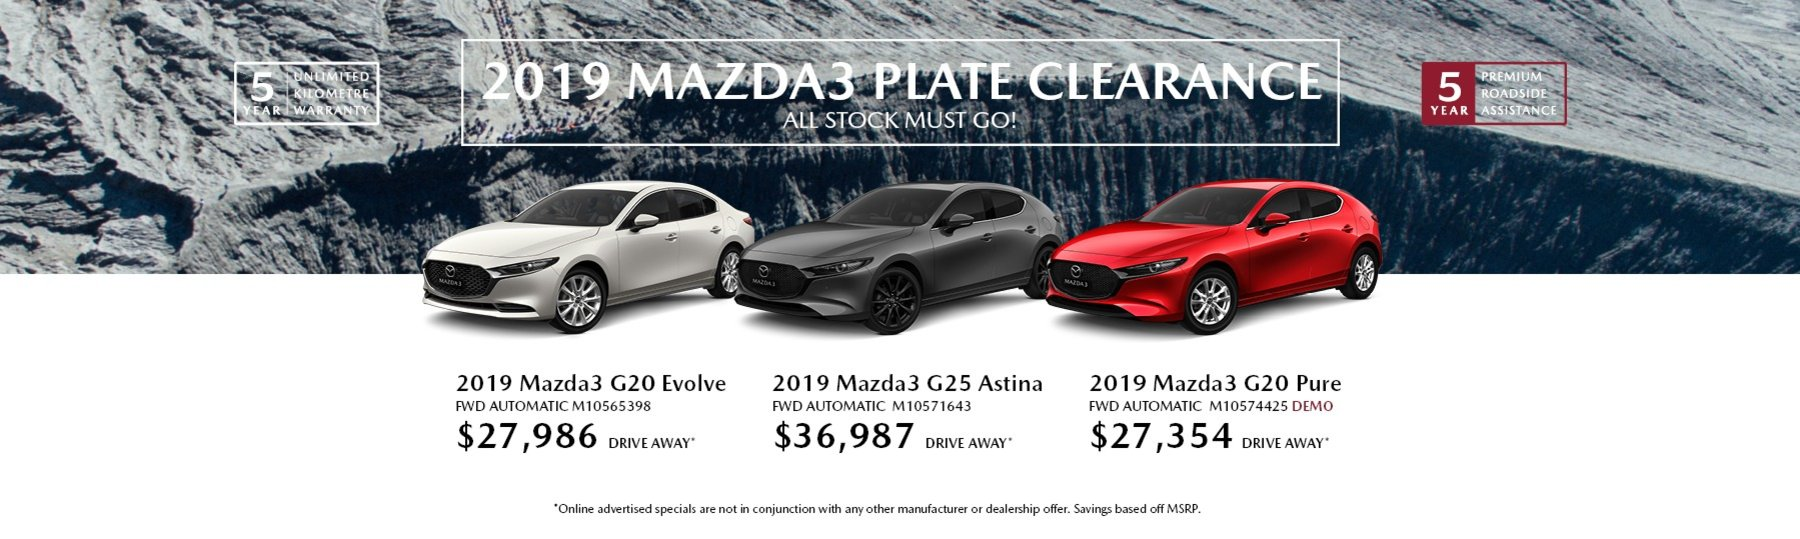 mazda new clearance banner